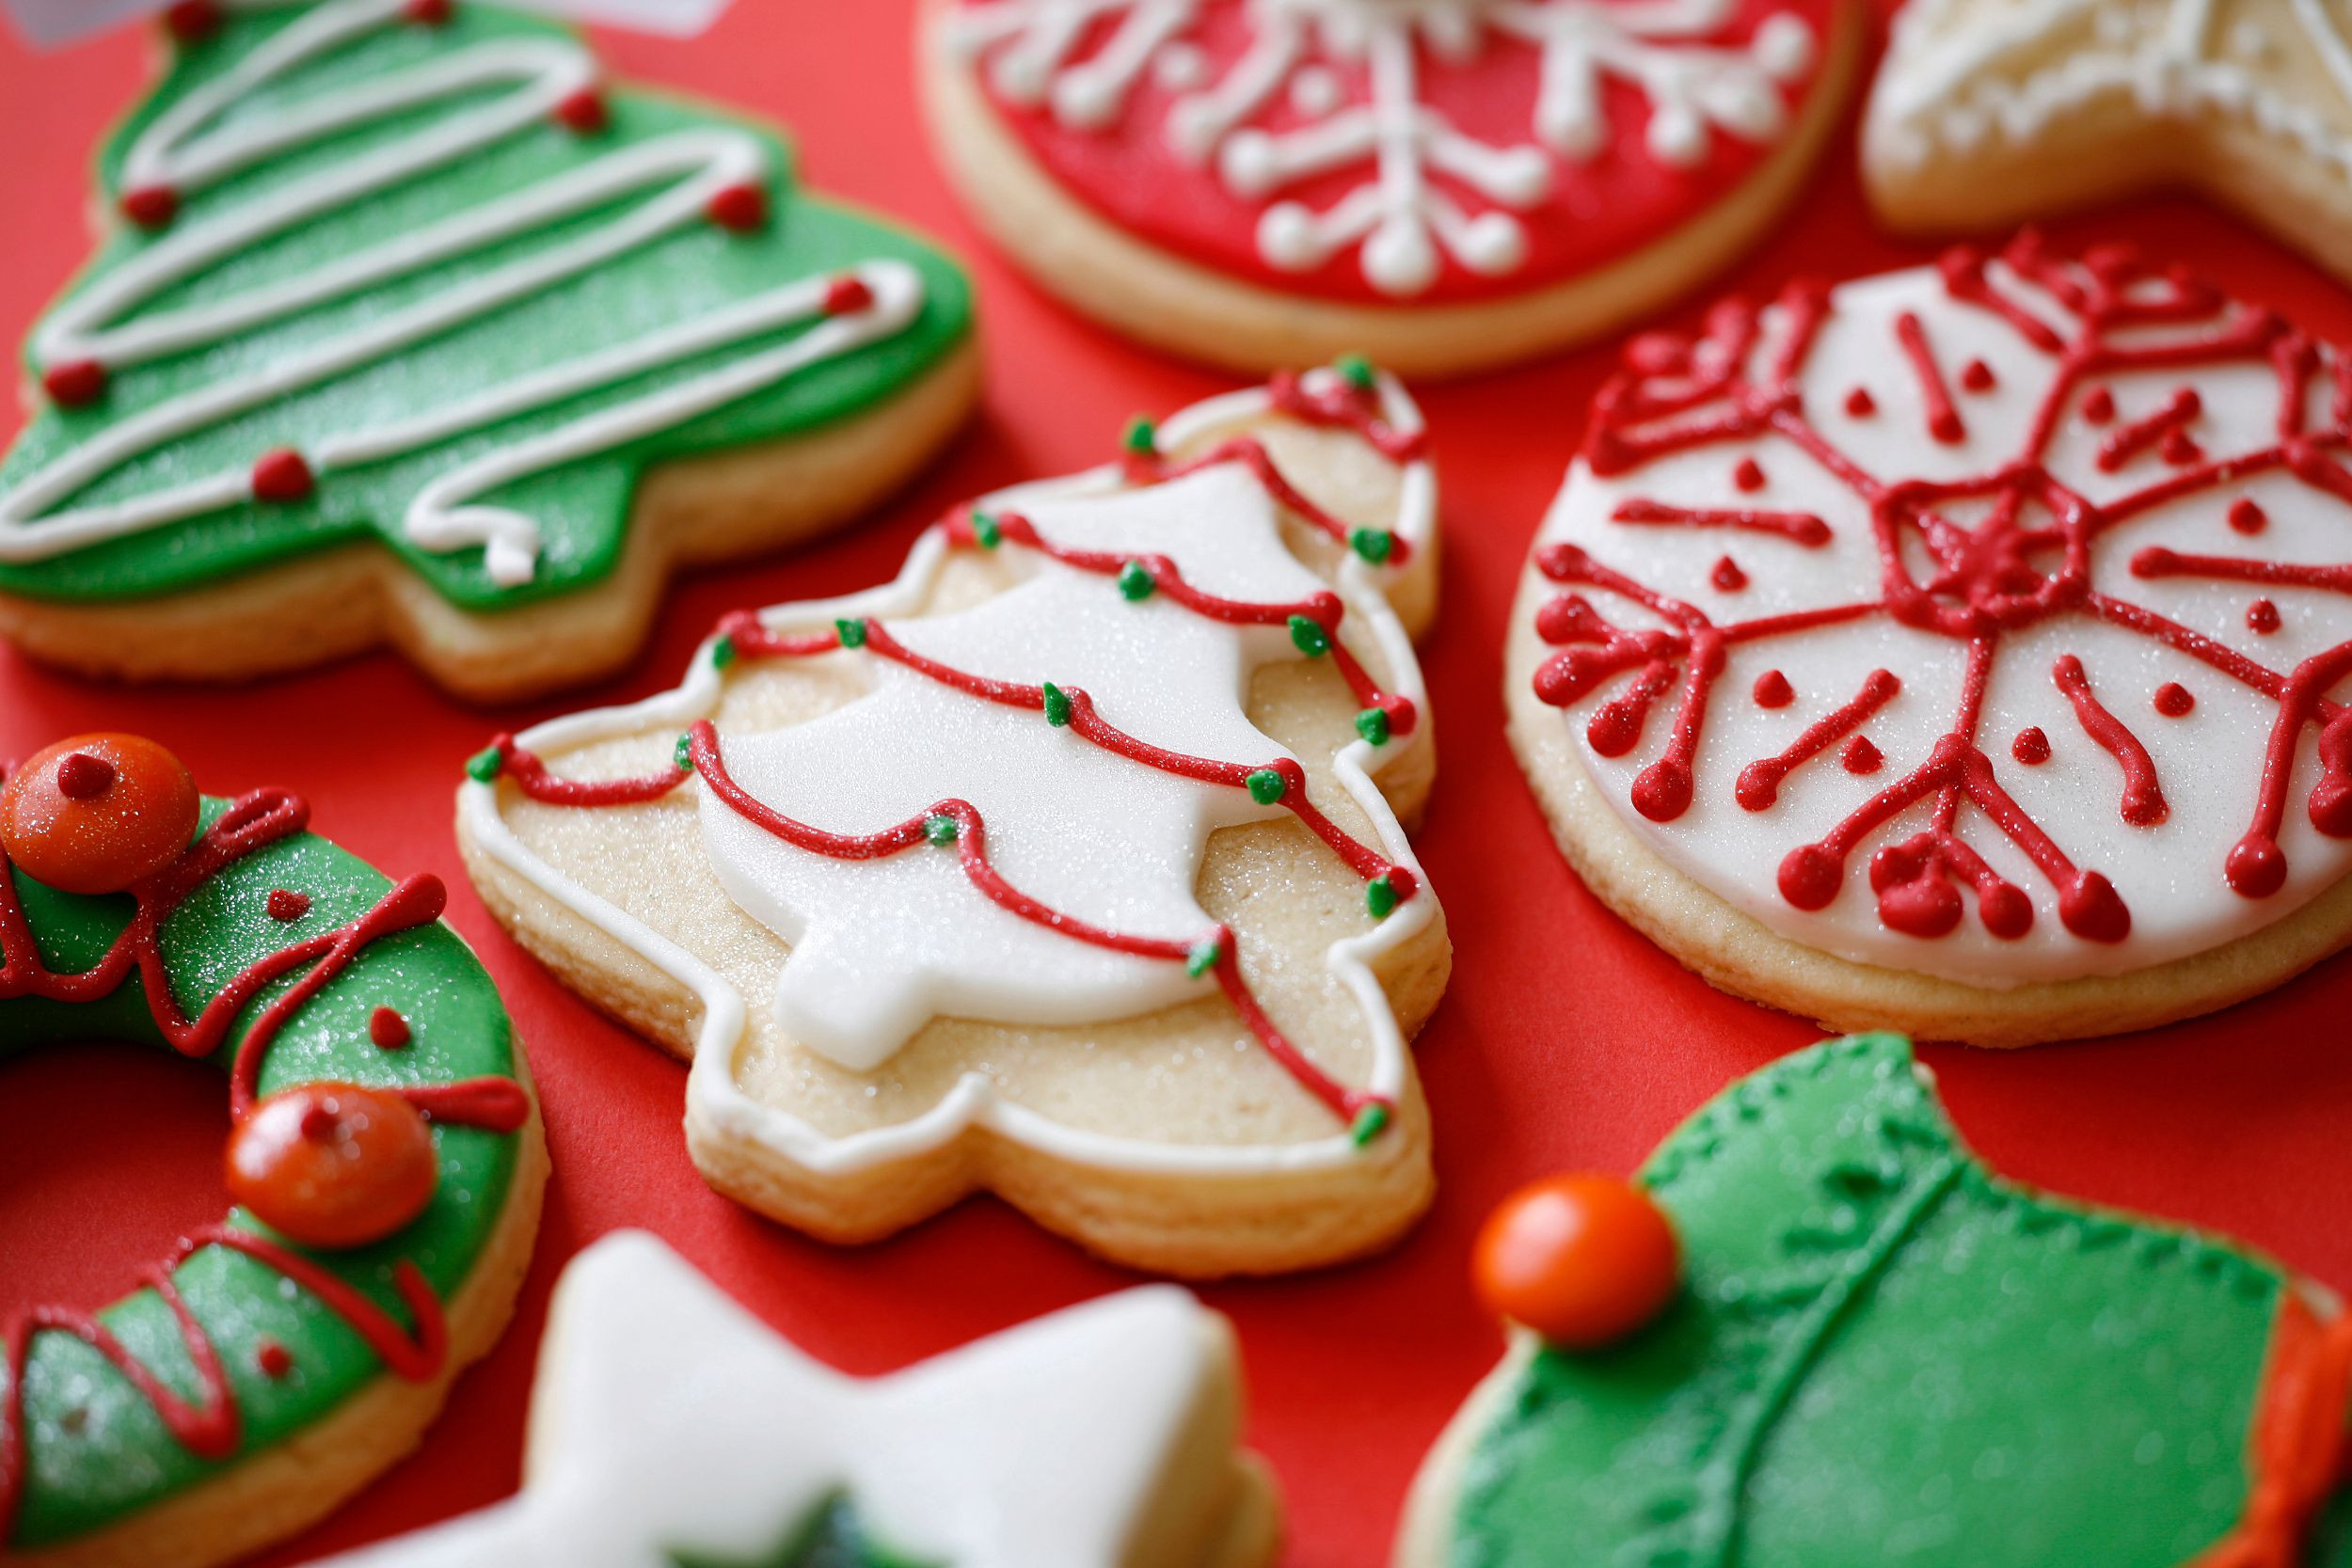 Icing For Christmas Cookies  Royal Icing Recipe for Decorating Cookies